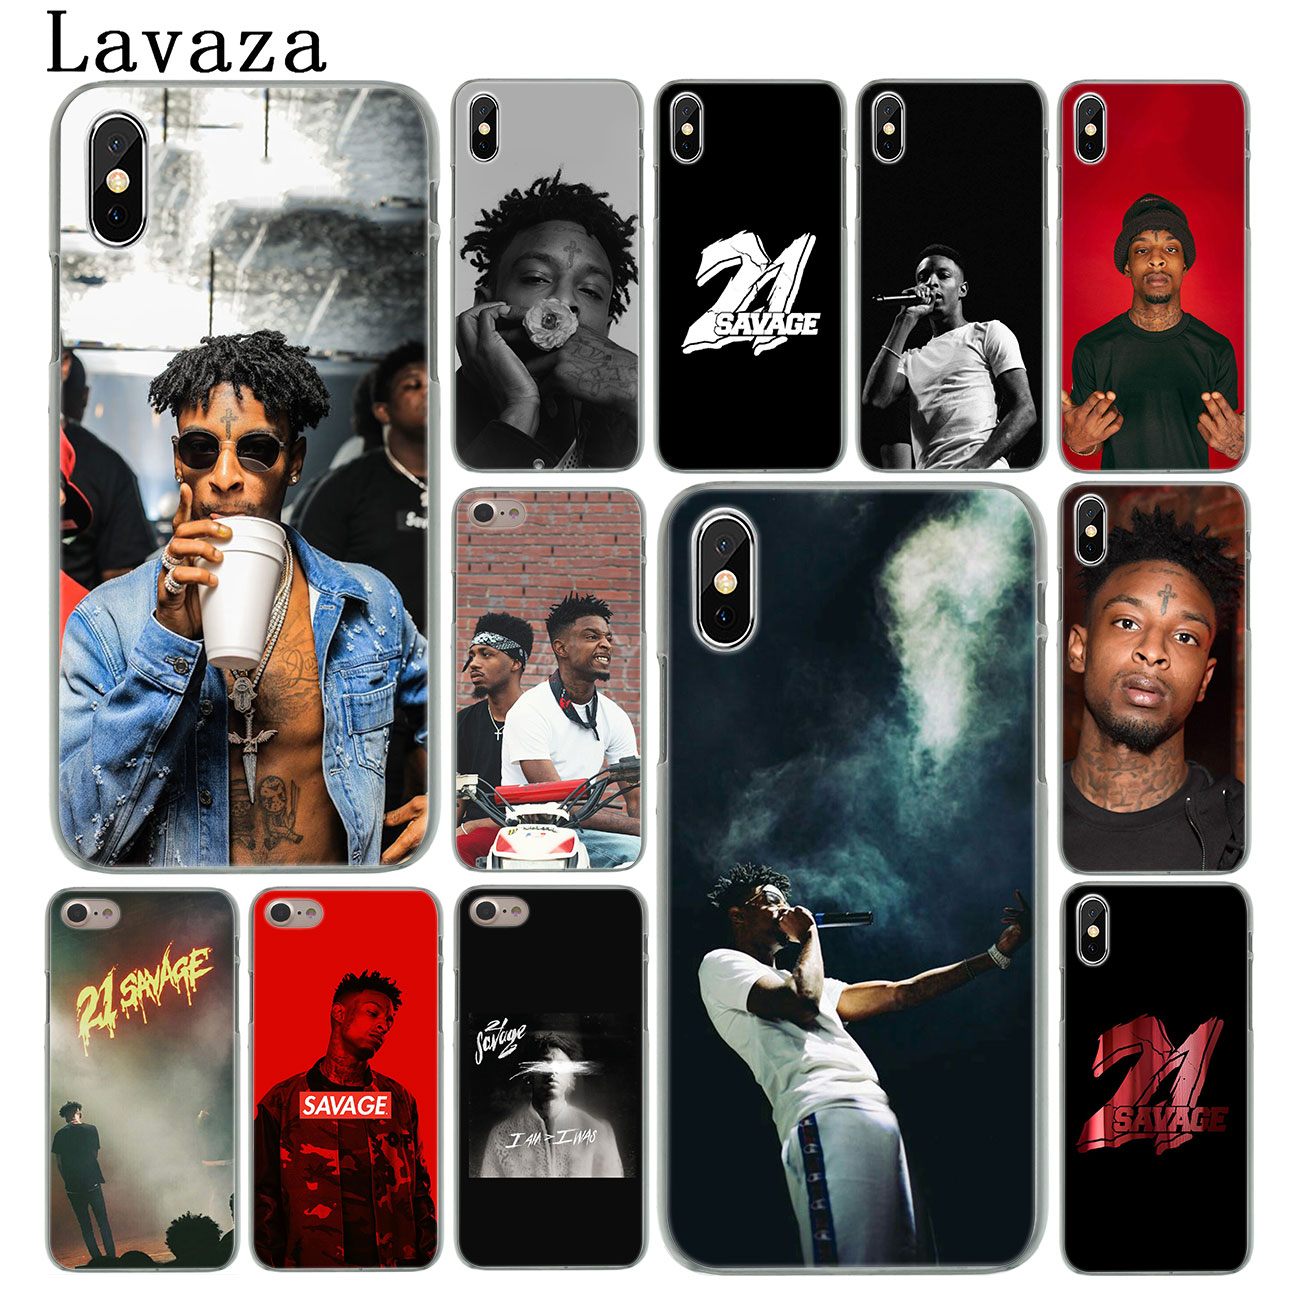 Lavaza <font><b>21</b></font> <font><b>Savage</b></font> 10 Cases Hard Phone Case for iPhone XR X XS 11 Pro Max 10 7 8 6 6S 5 5S SE 4 4S Cover image